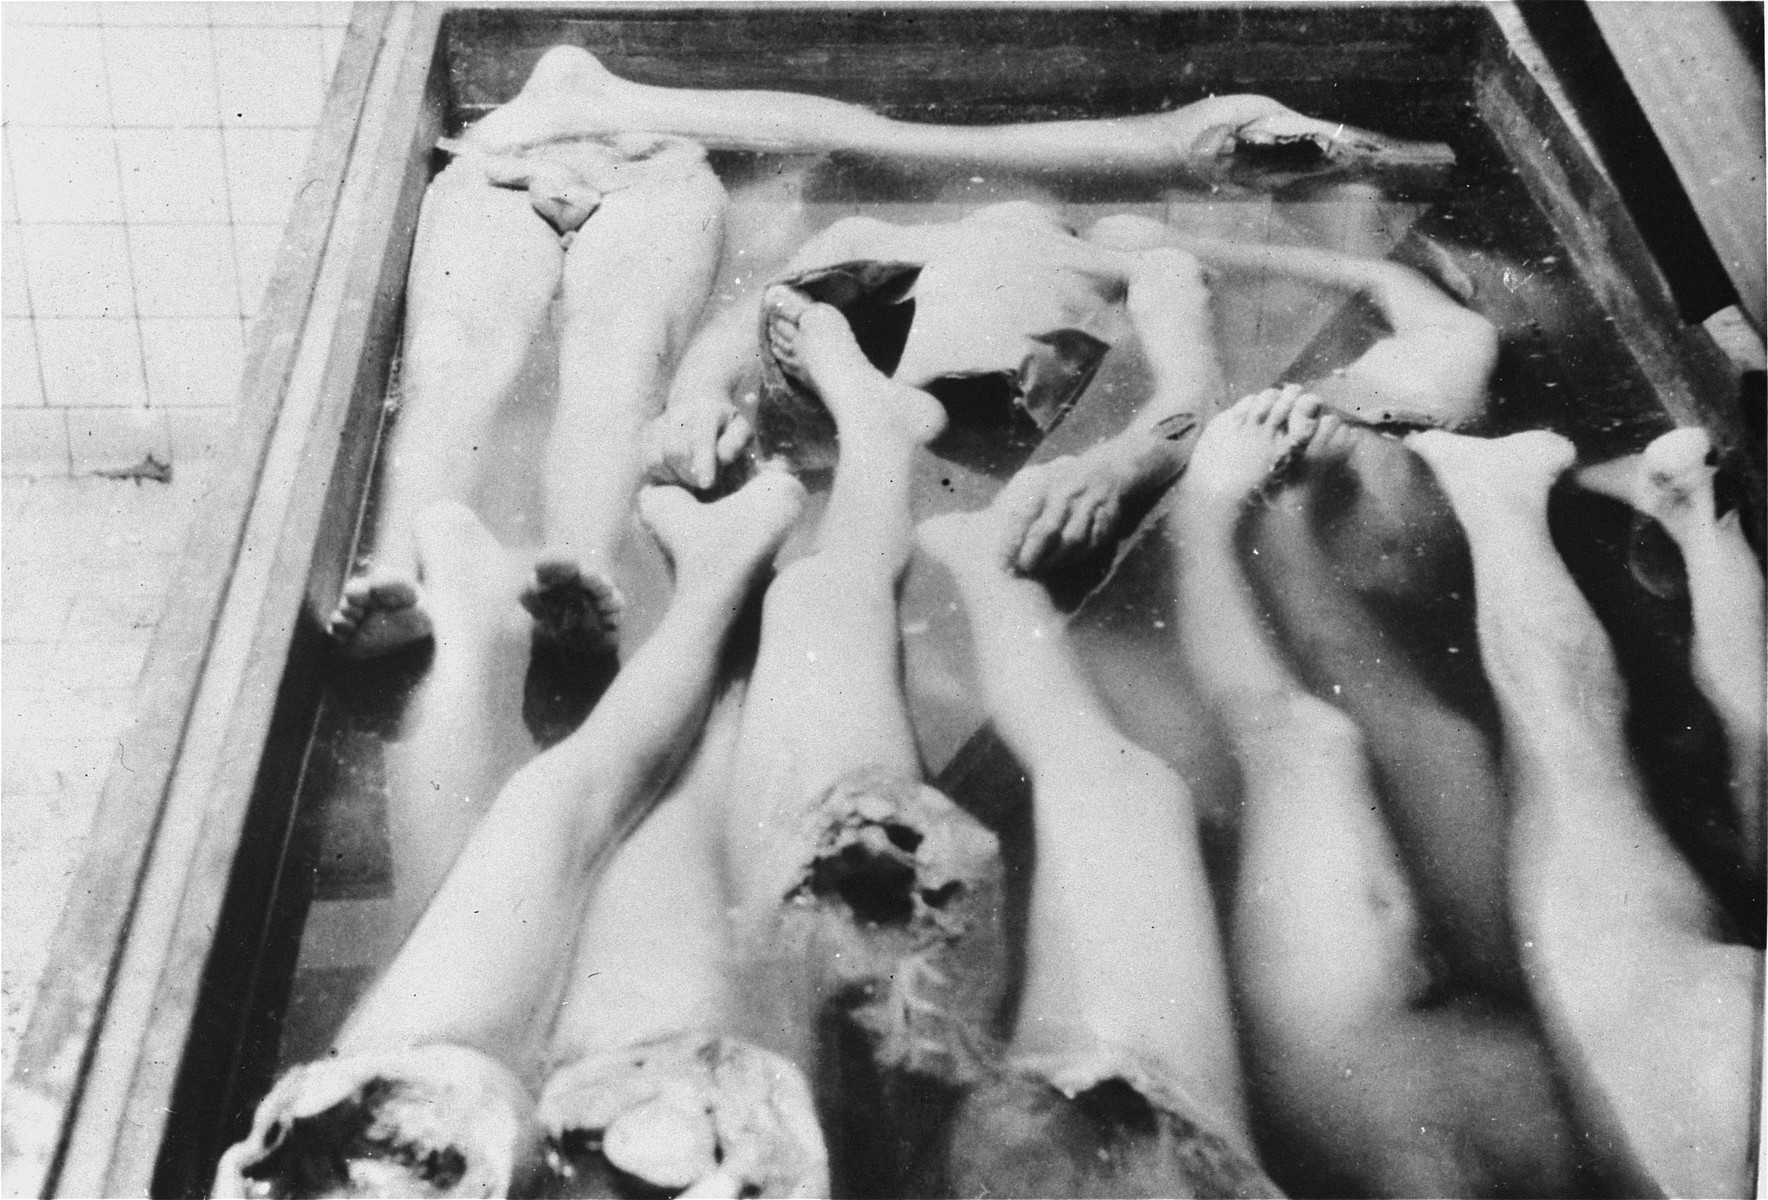 "Human body parts in a vat of alcohol at the Strasbourg University Anatomical Institute.  At the end of August,1943, eighty-six Jews, including 30 women, were gassed in Natzweiler-Struthof for the purpose of constructing a collection of skulls and skeletons to be kept at the Strasbourg University Institute of Anatomy, under the directorship of August Hirt.  The individuals were ""selected"" at Auschwitz for their special bone structure and transferred to Natzweiler, where SS Captain Josef Kramer, the commandant of the camp, oversaw the operation.  The corpses then remained in vats of alcohol for over a year, the project envisioned by Hirt having never been completed.  When Allied forces approached Strasbourg in November 1944, SS administrators were unaware that evidence of the crime still existed at the Institute, and only at the last minute ordered the bodies destroyed.  This operation failed, however, and 16-17 of the bodies fell into Allied hands. [Klarsfeld, S., ed. The Struthof Album, 1985]"